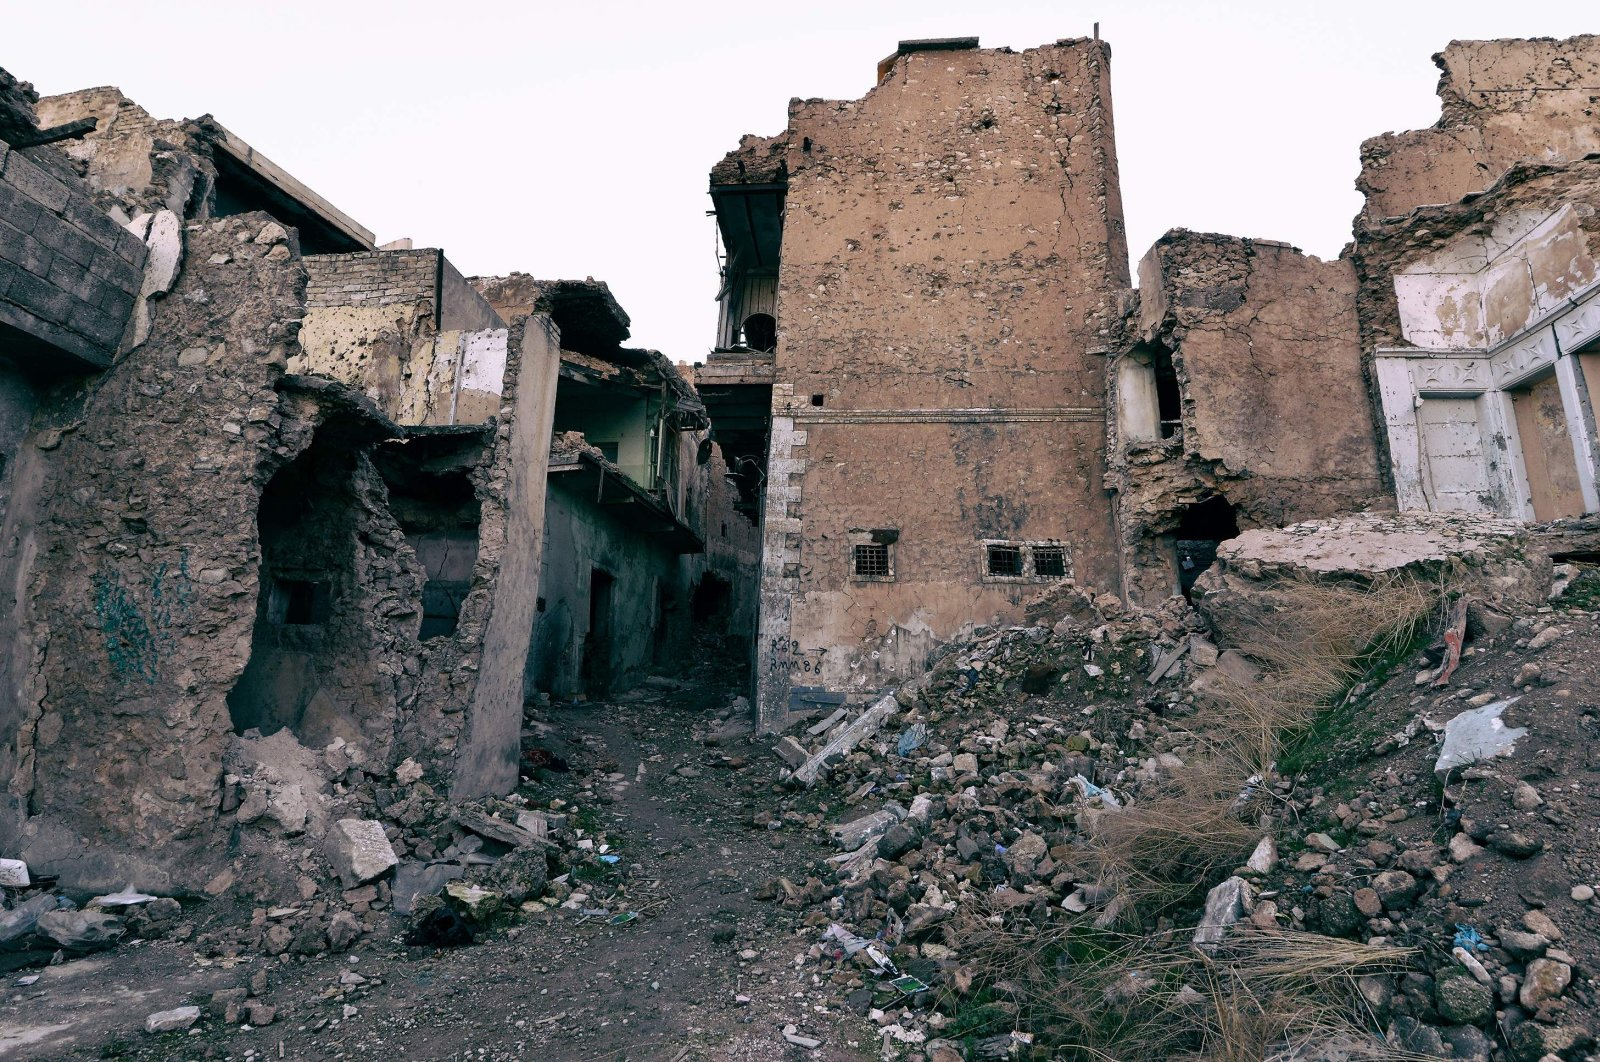 A picture shows destroyed buildings in Iraq's northern city of Mosul, which was captured by the Daesh terror group in 2014 and was liberated by the Iraqi Army in mid-2017, Jan. 18, 2021. (AFP Photo)